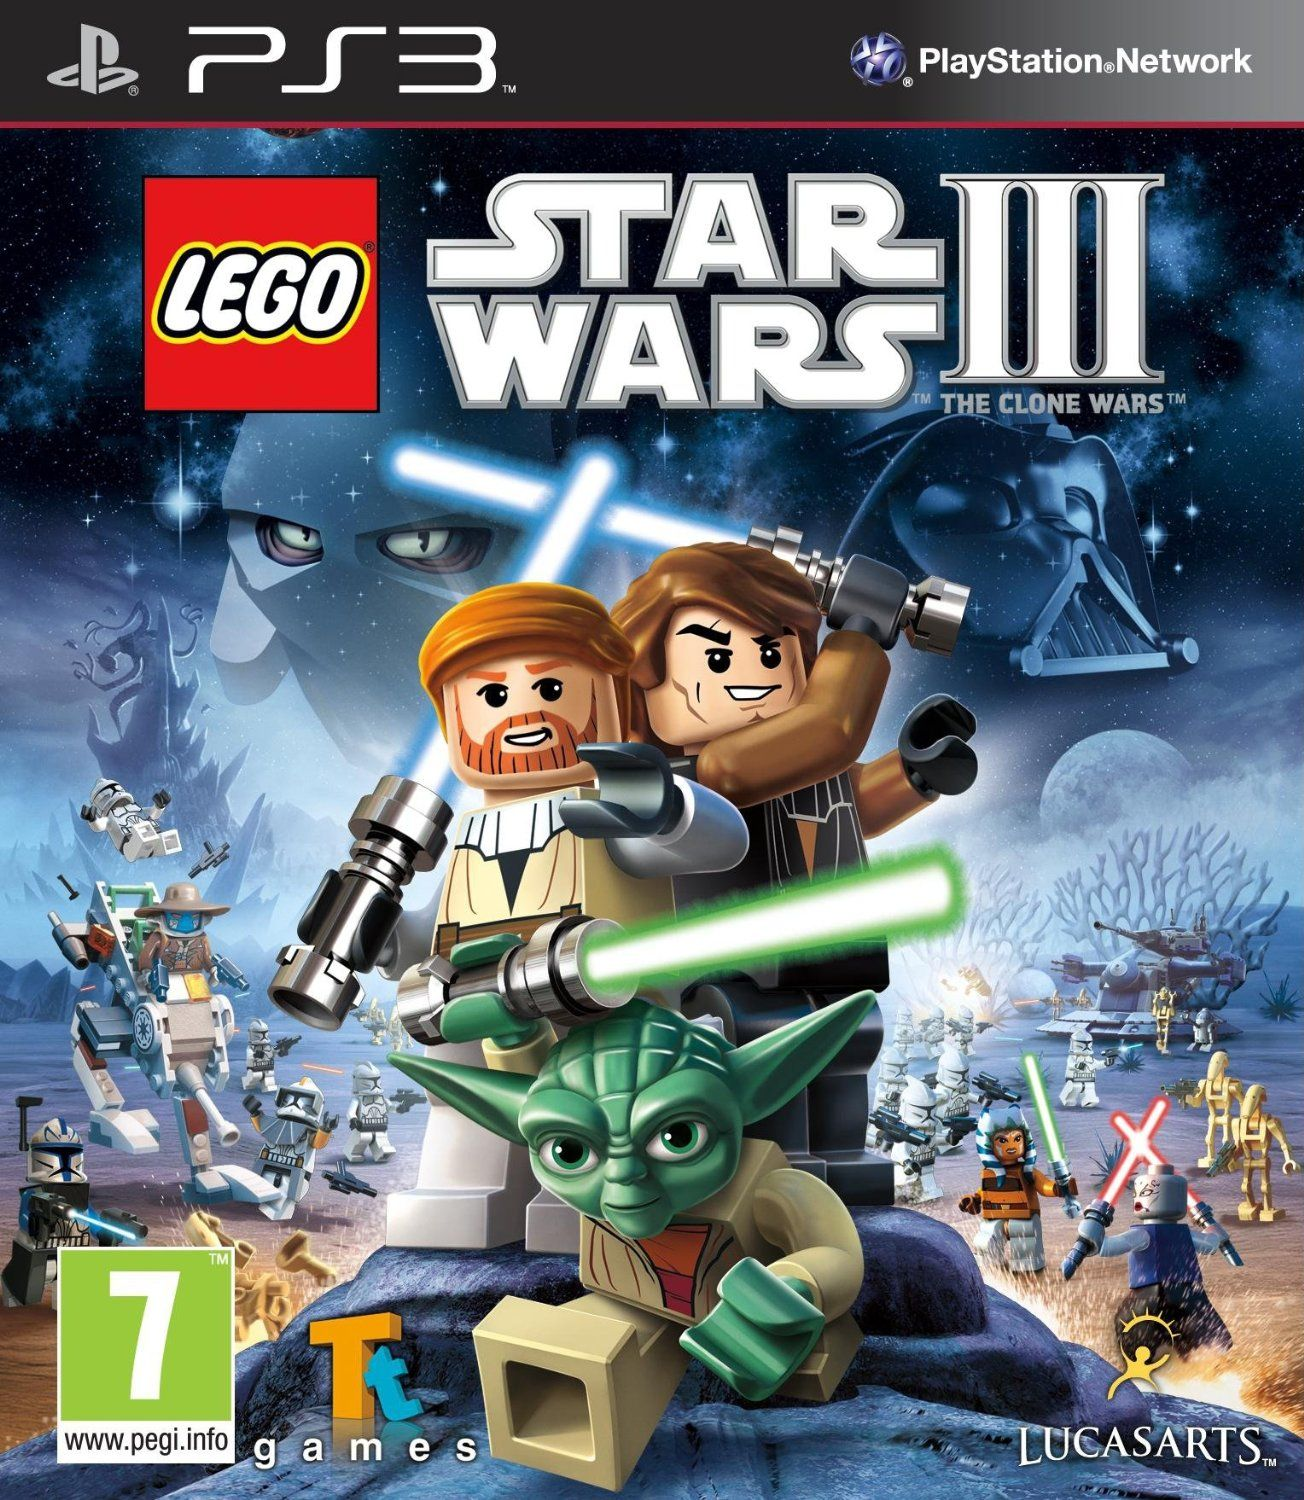 Lego Star Wars 3 The Clone Wars Ps3 Amazon Co Uk Pc Video Games Star Wars Wallpaper Lego Star Wars Lego Star